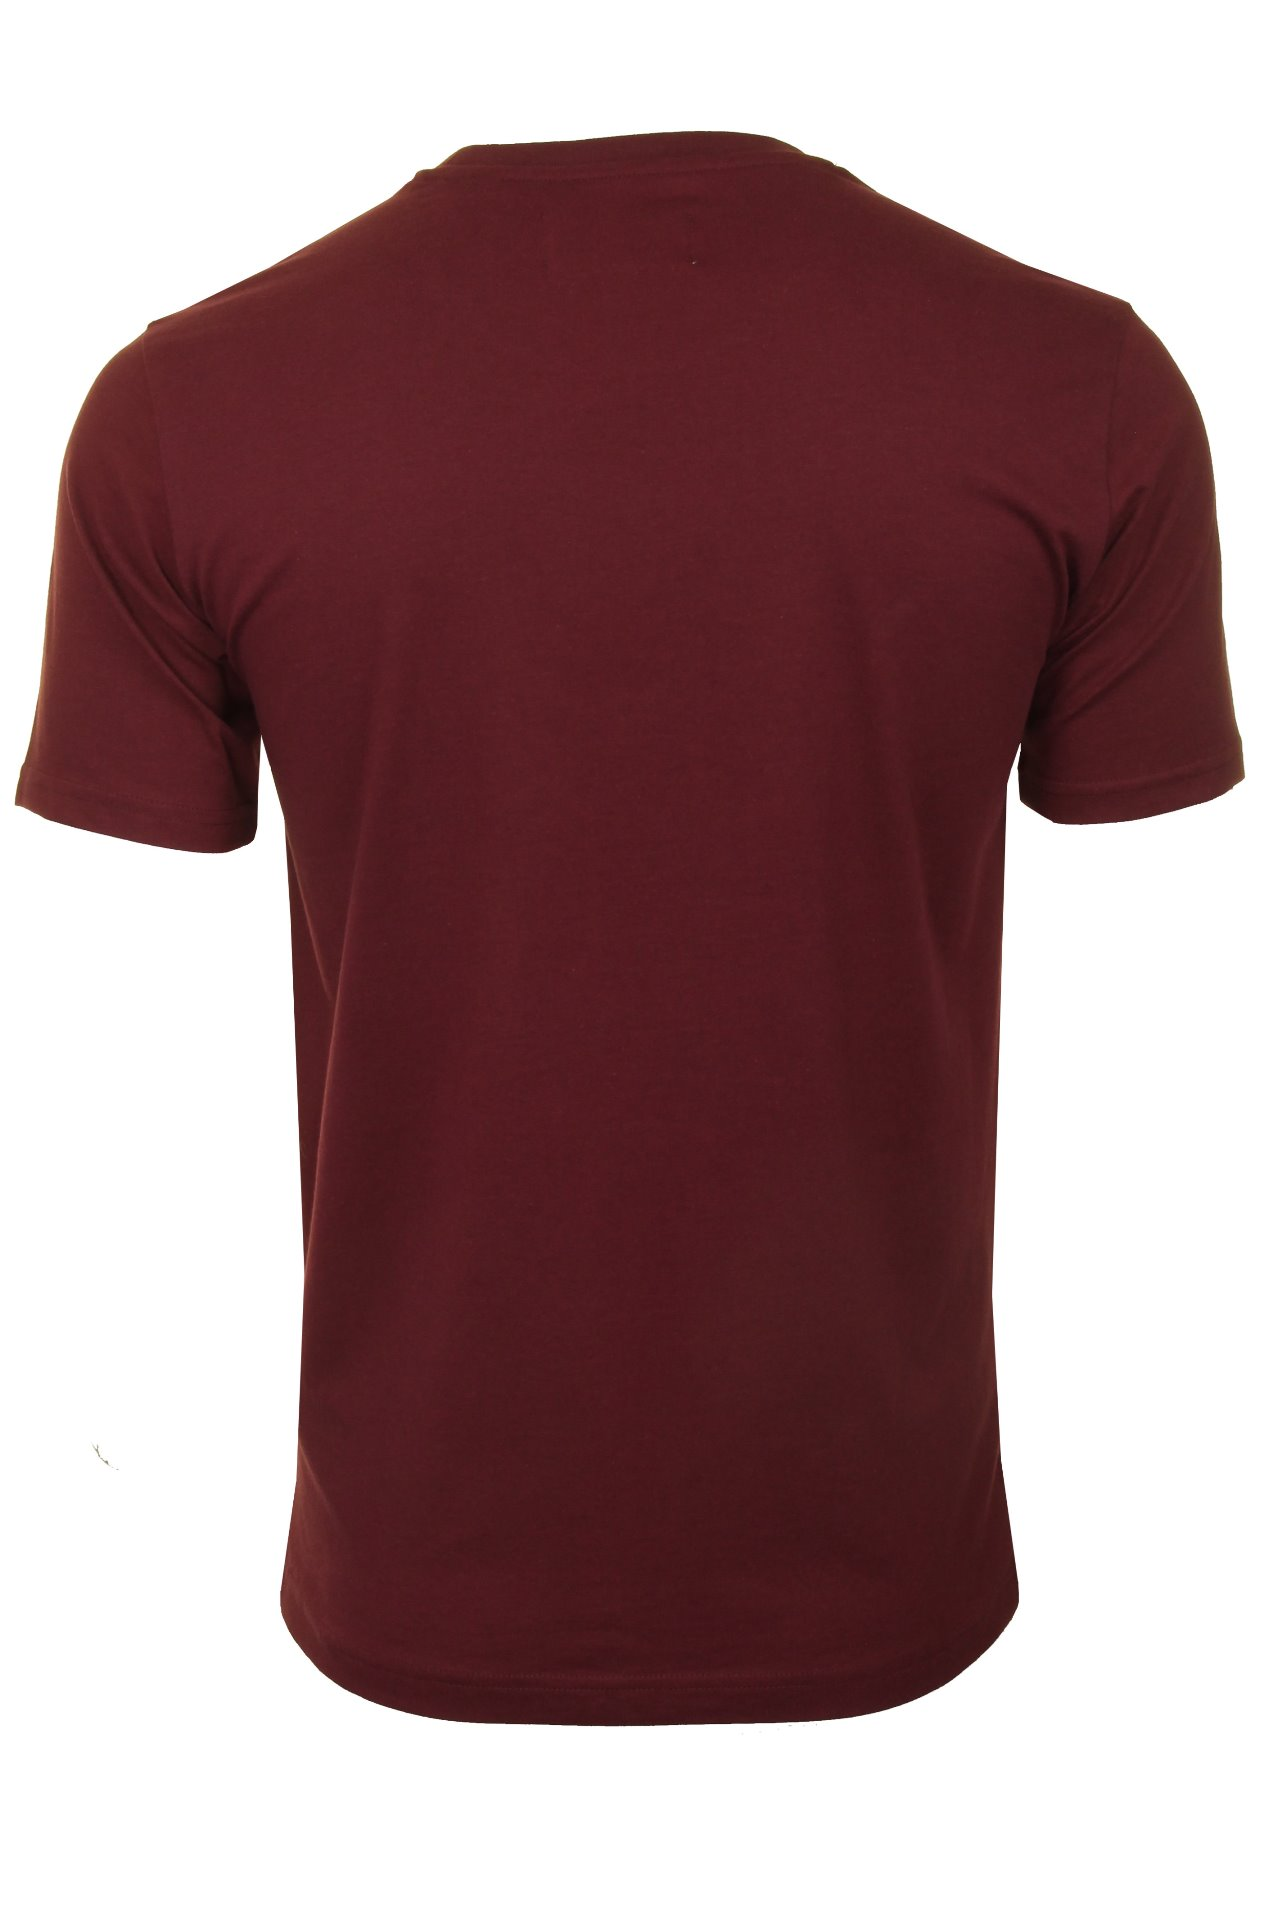 Original-Penguin-Mens-T-Shirt-039-Pin-Point-Embroidered-039-Short-Sleeved thumbnail 26